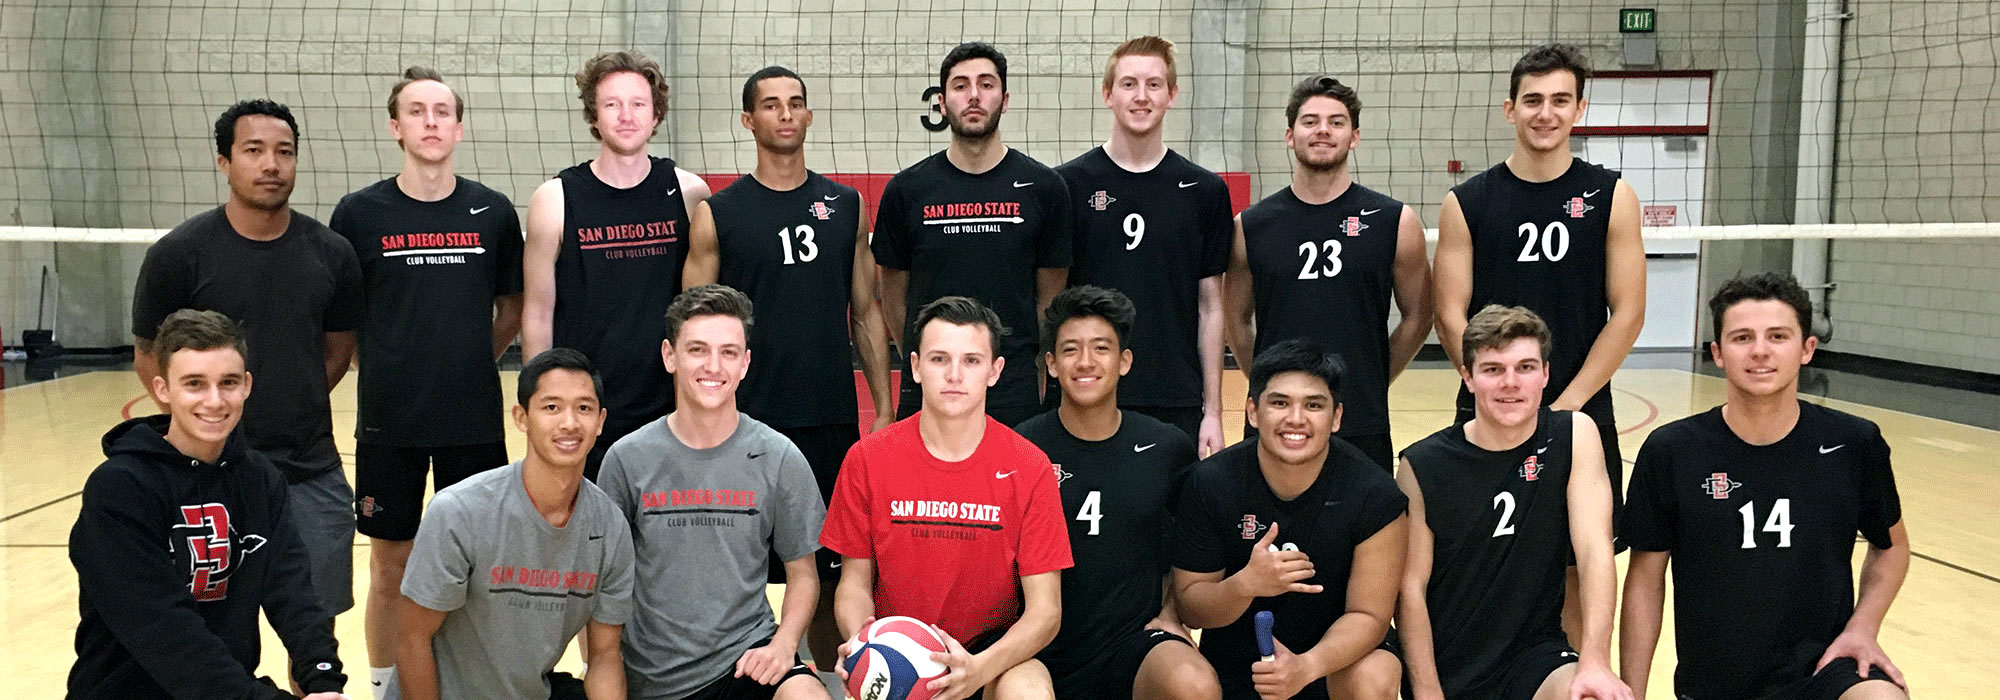 Men's Volleyball Club Team